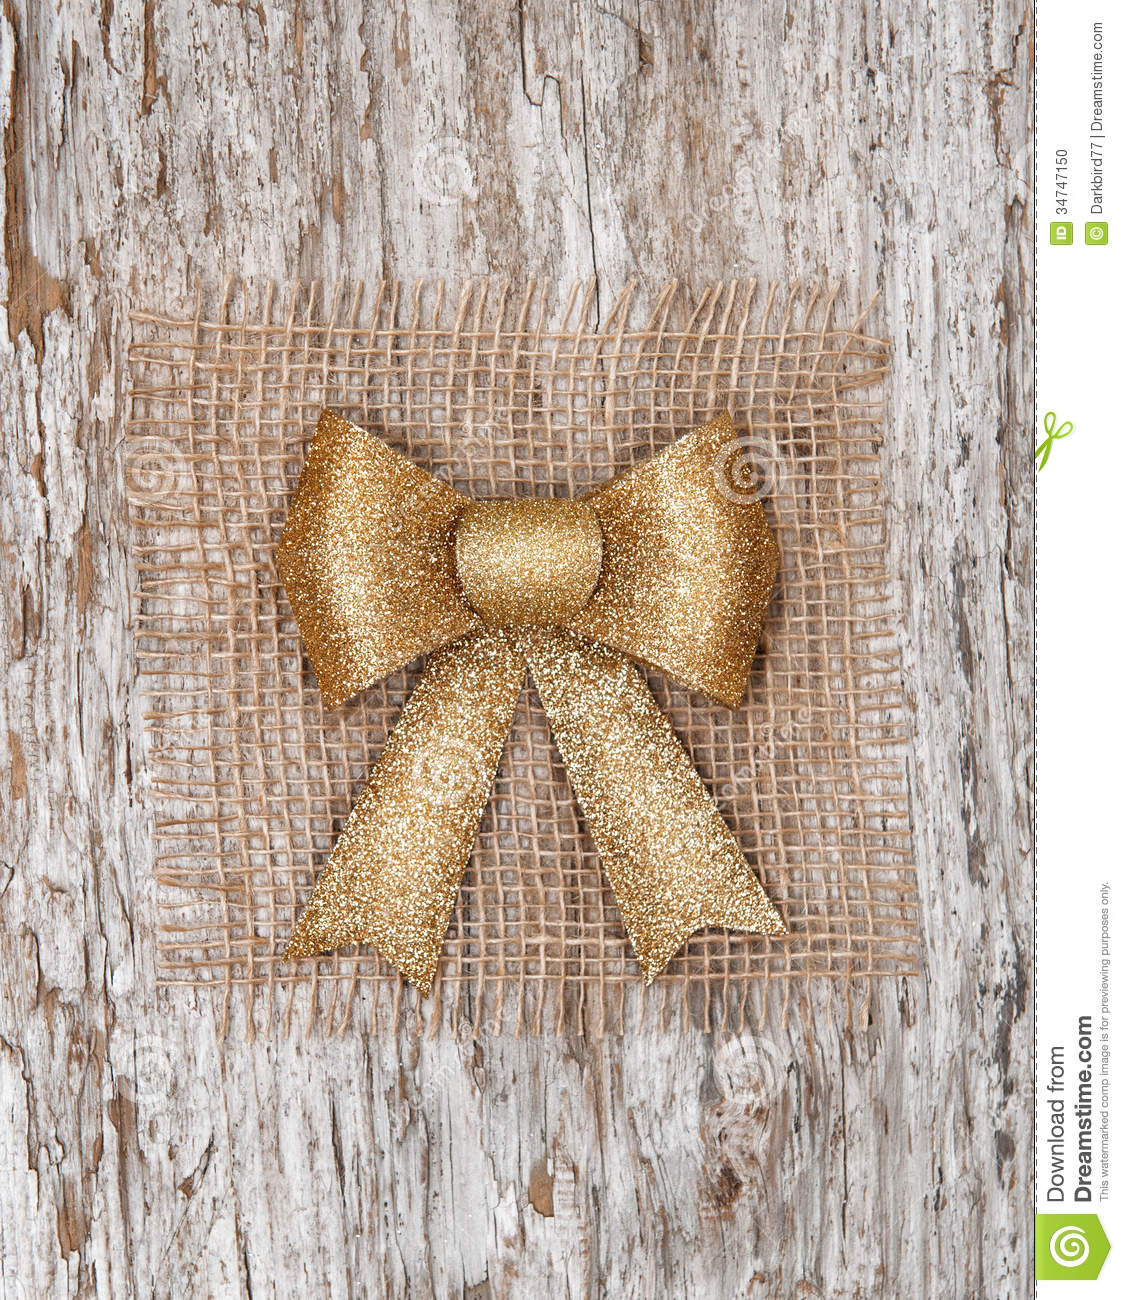 Golden Bow On The Burlap Textile And Old Wood Stock Photo   Image